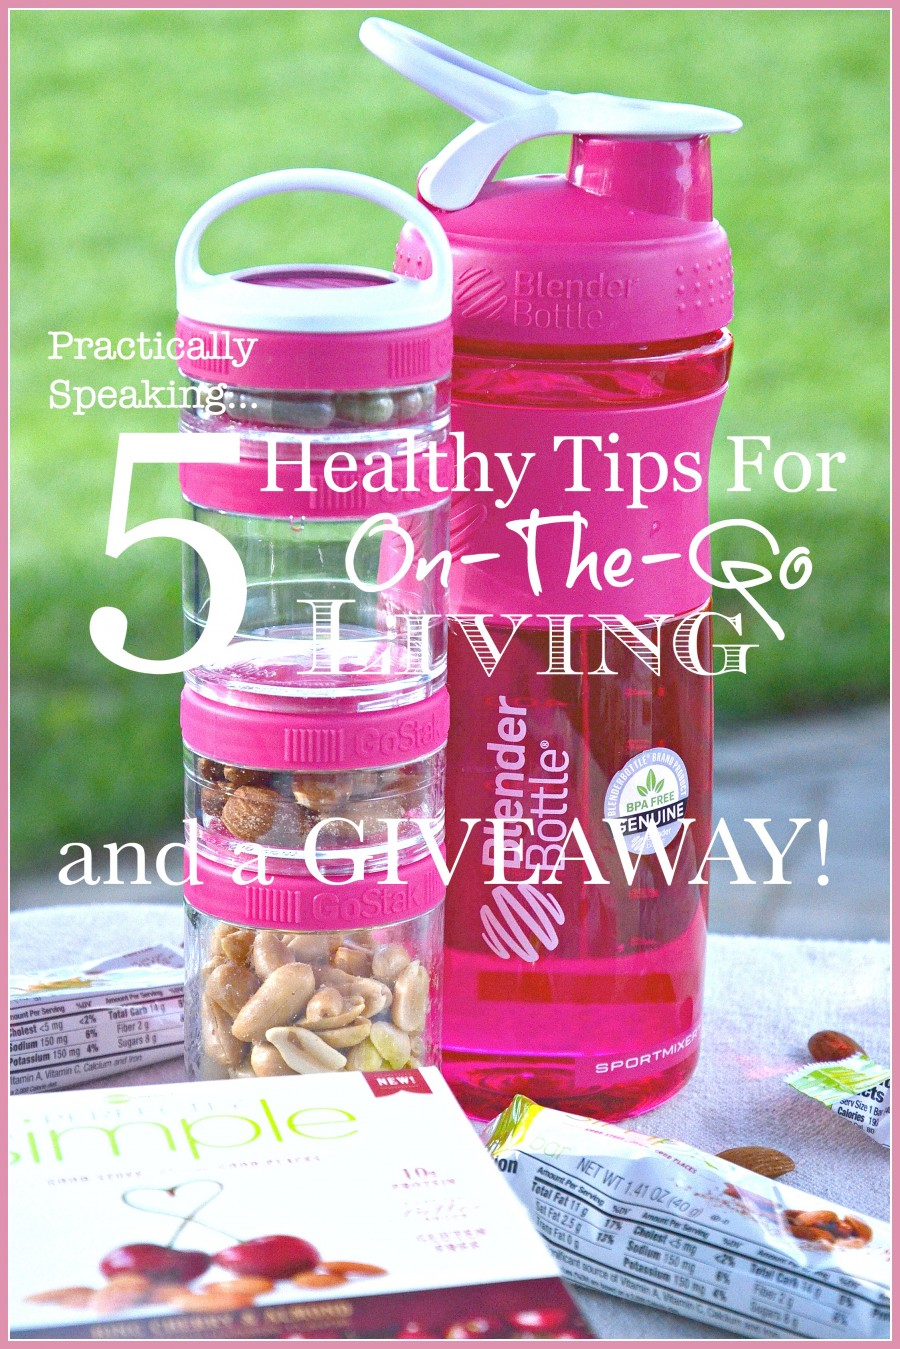 ON THE GO HEALTHY GIVEAWAY! $100.00 VALUE